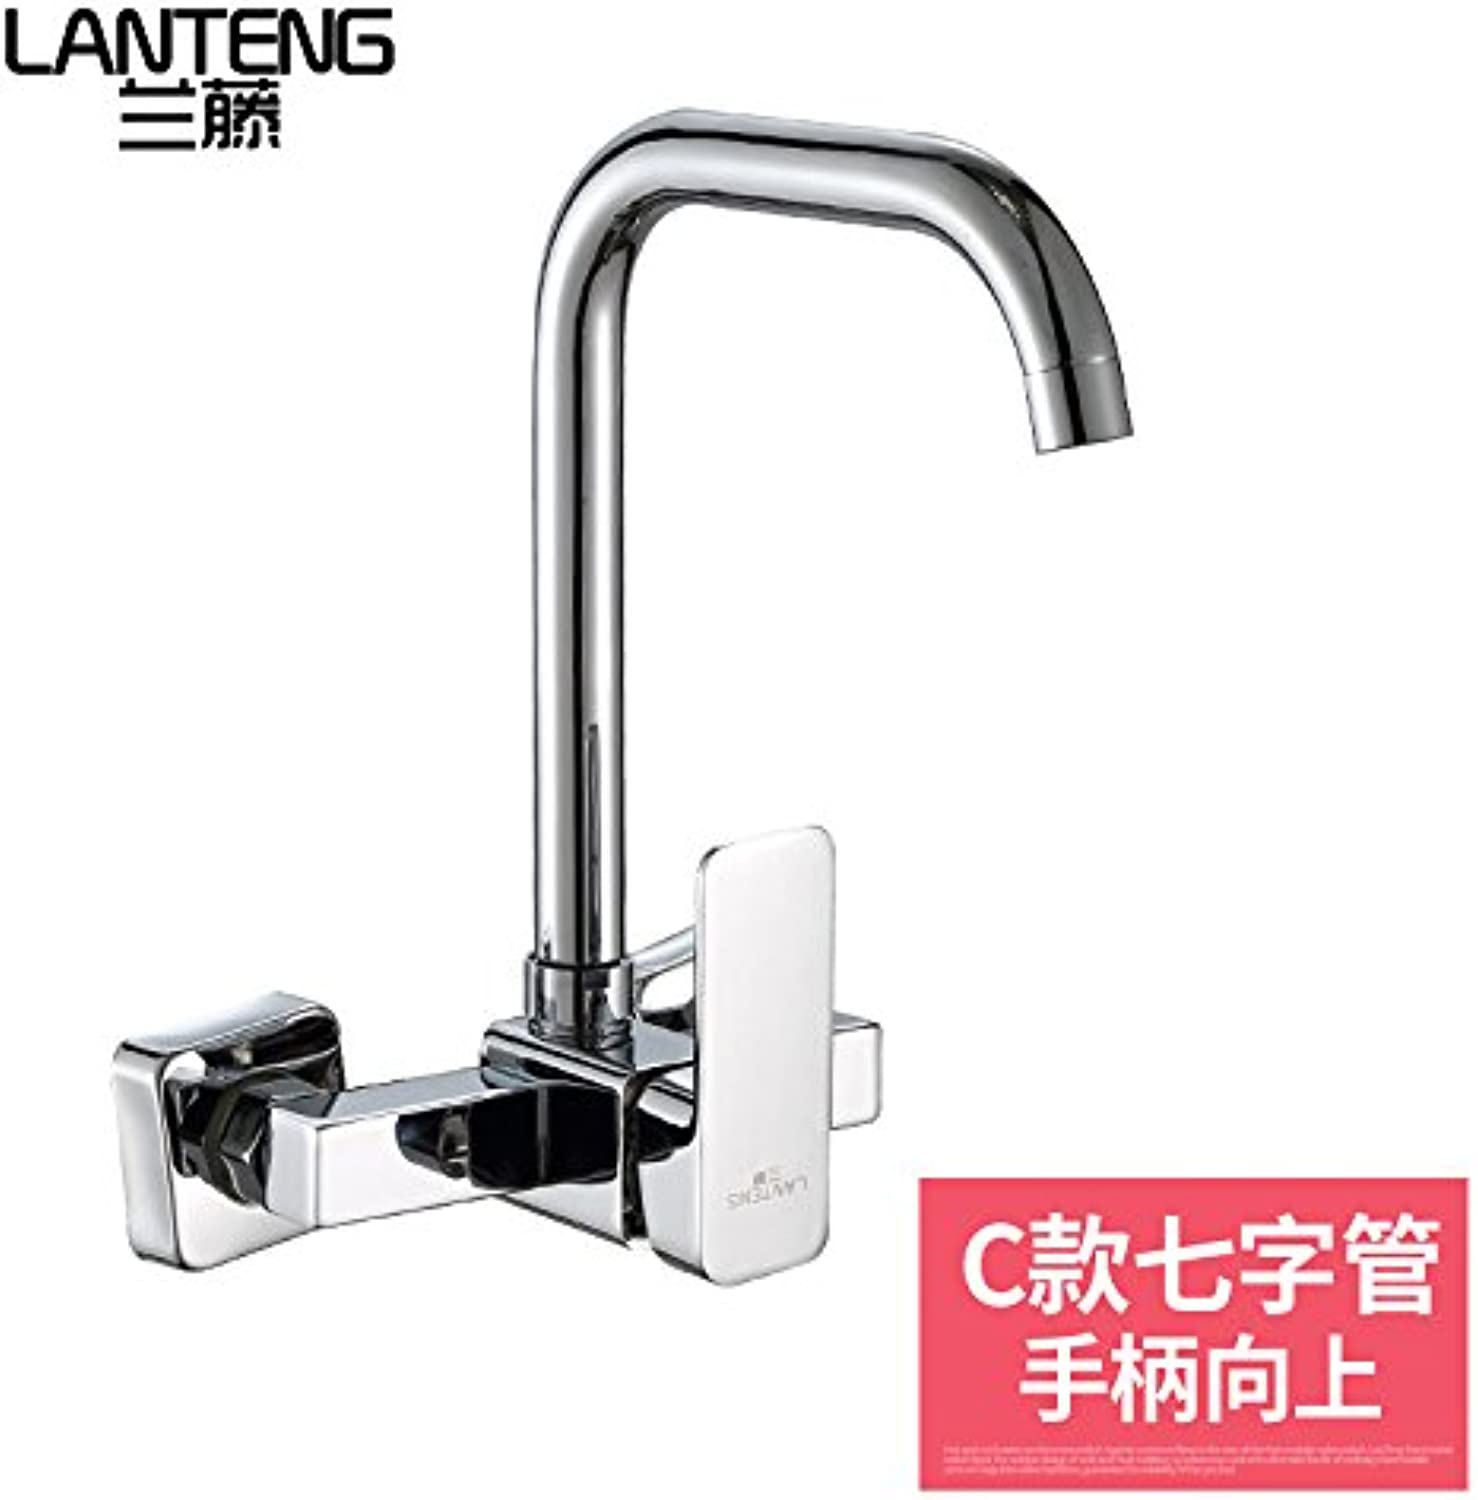 Bijjaladeva Bathroom Sink Vessel Faucet Basin Mixer Tap Two holes into WALL MOUNTED KITCHEN FAUCET laundry pool vegetable basin sink cold water tap water mixing valve 7 C of field